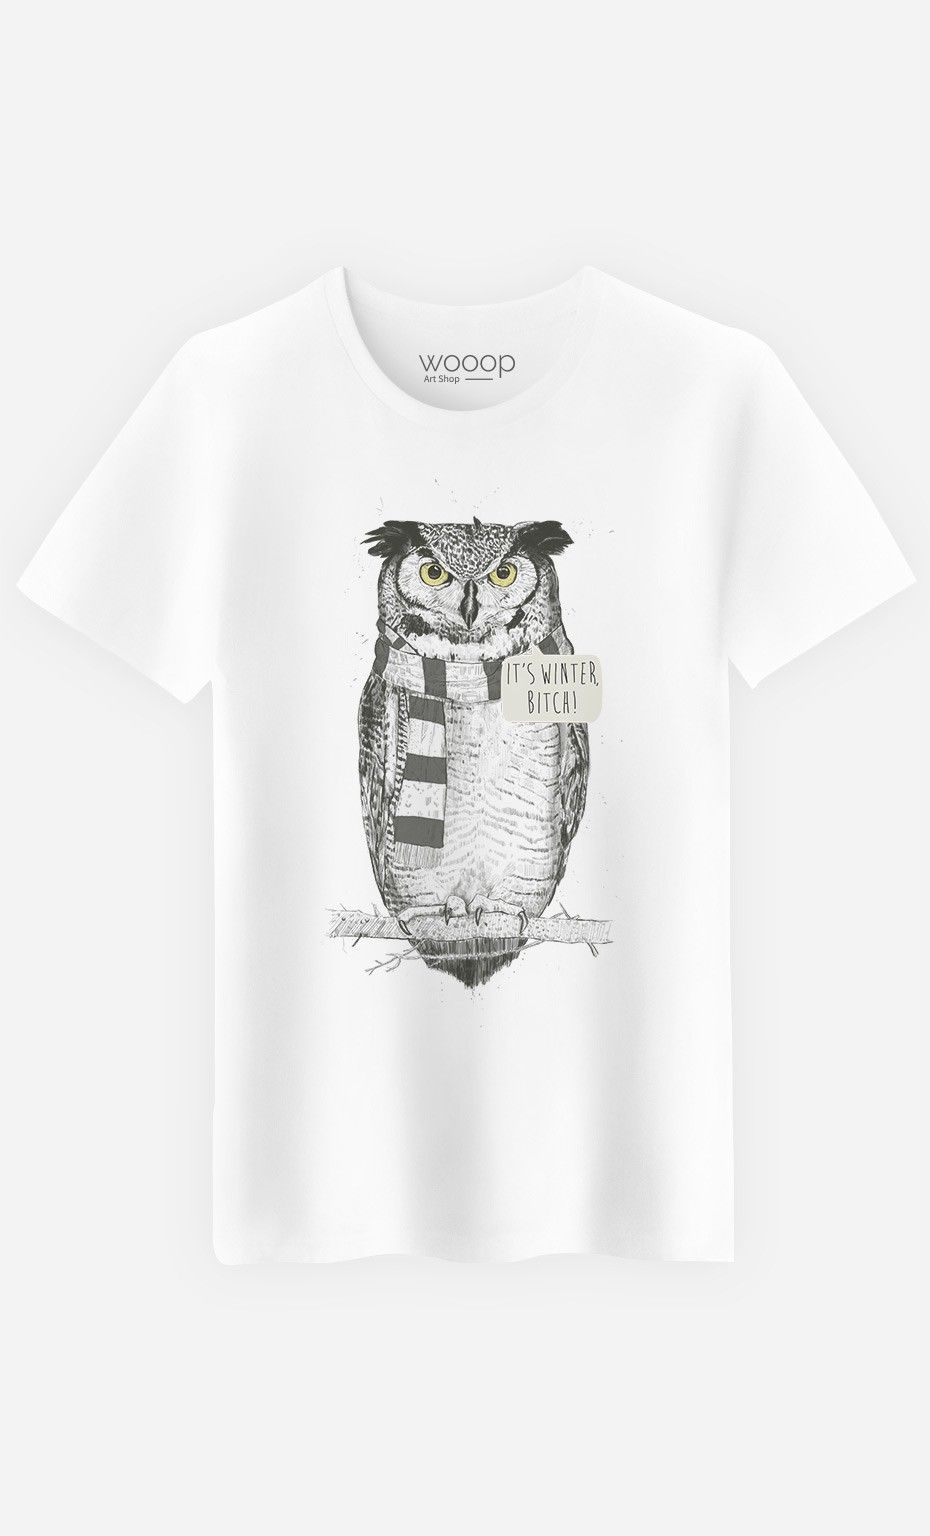 T-Shirt Homme It's Winter Bitch by Solti Balazs - Wooop.fr